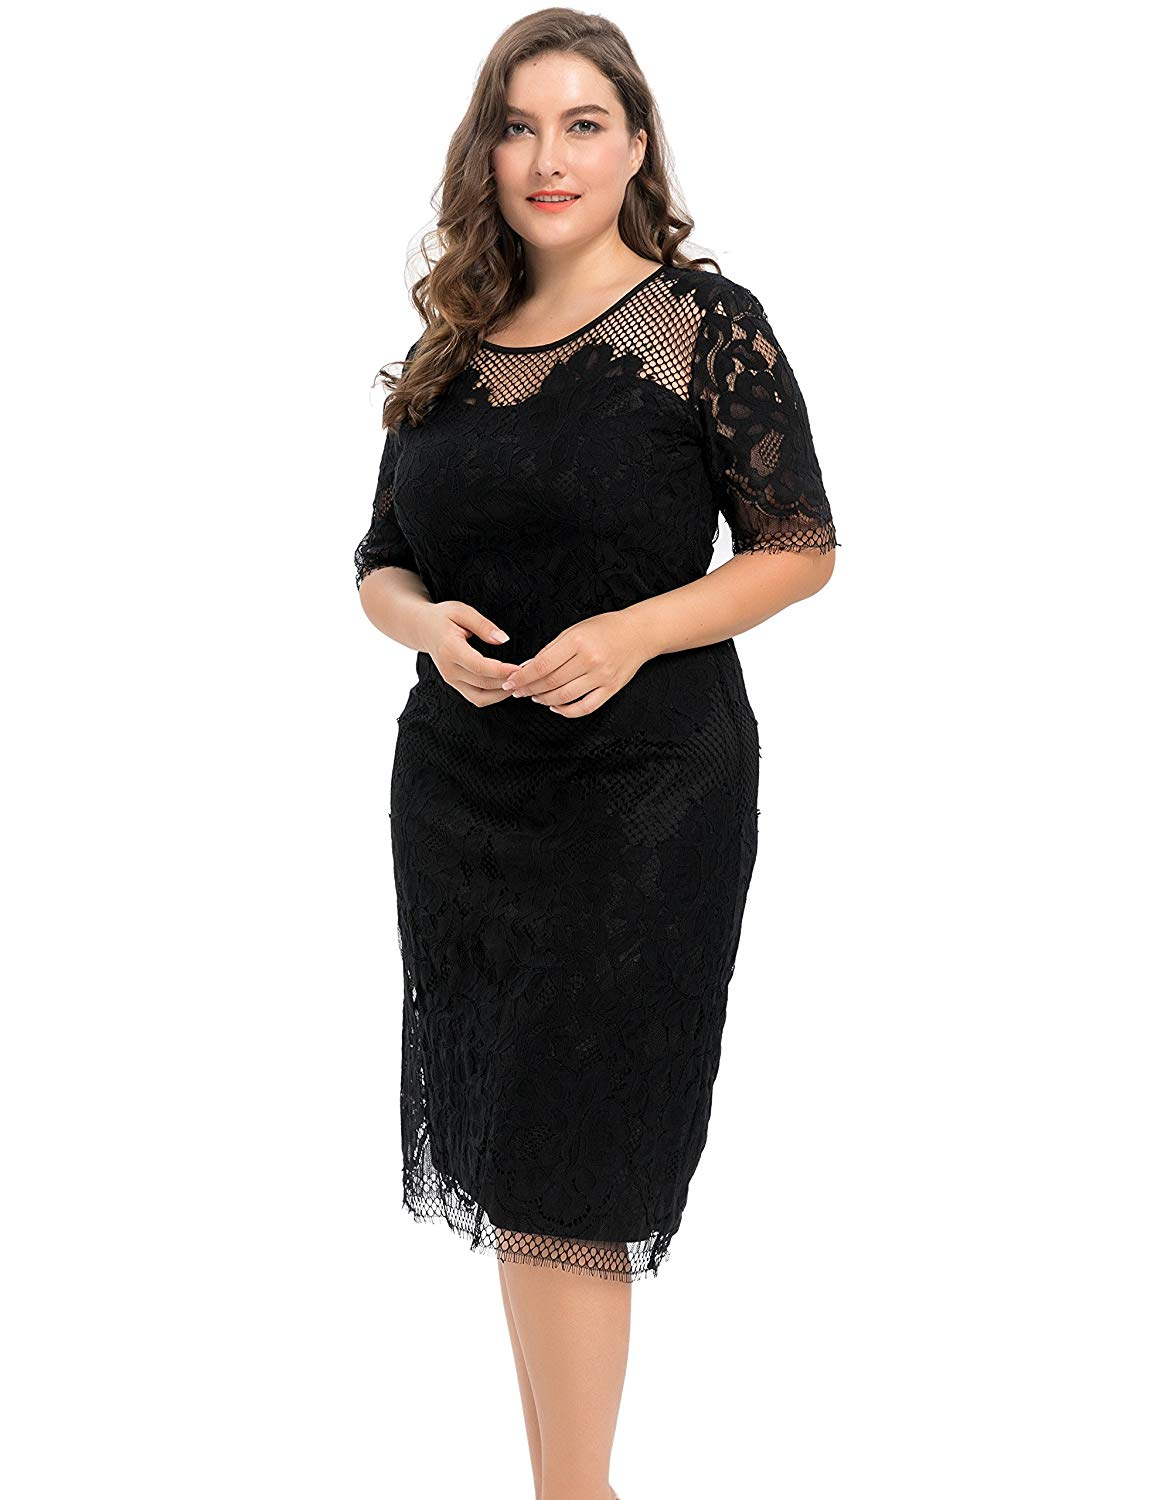 b6334e0be501 Chicwe Women's Plus Size Lined Floral Lace Dress - Knee Length Casual Party Cocktail  Dress